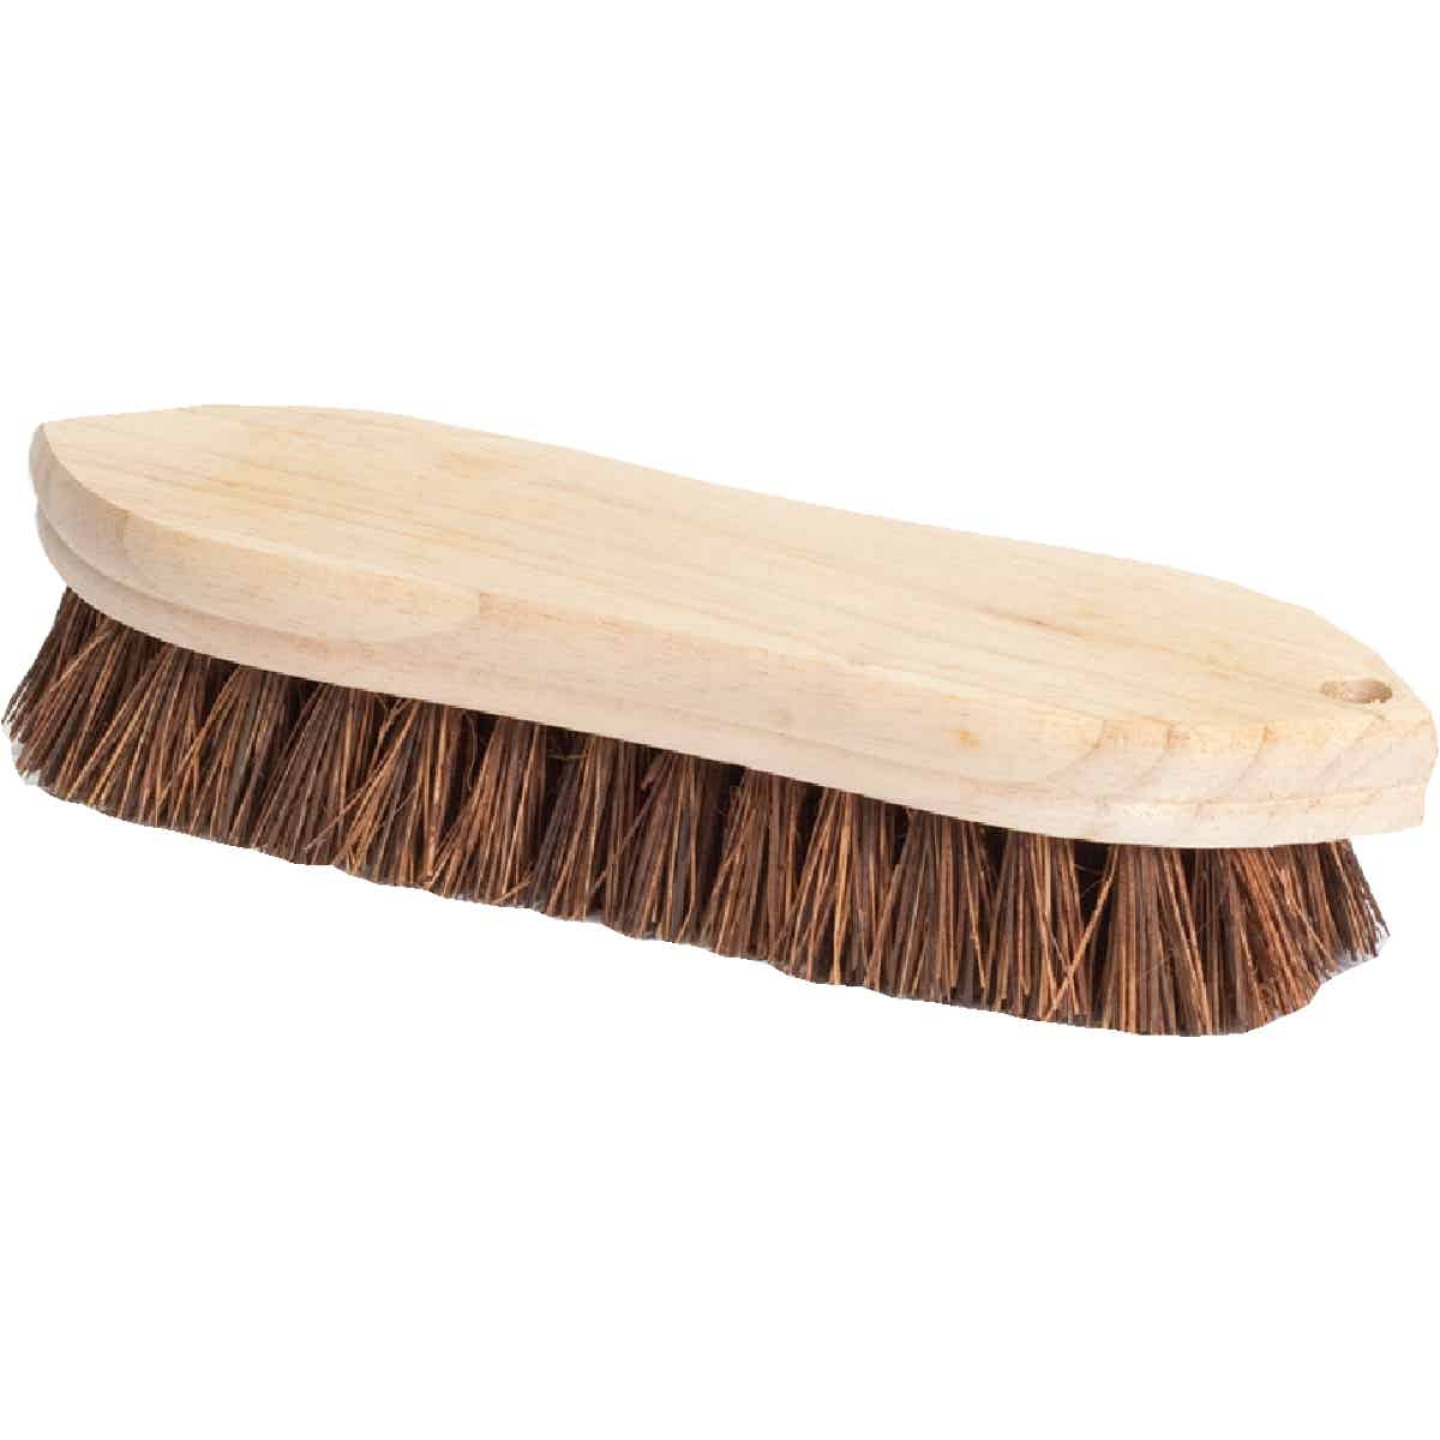 Do it 9 In. Palmyra Bristle Hardwood Scrub Brush Image 1